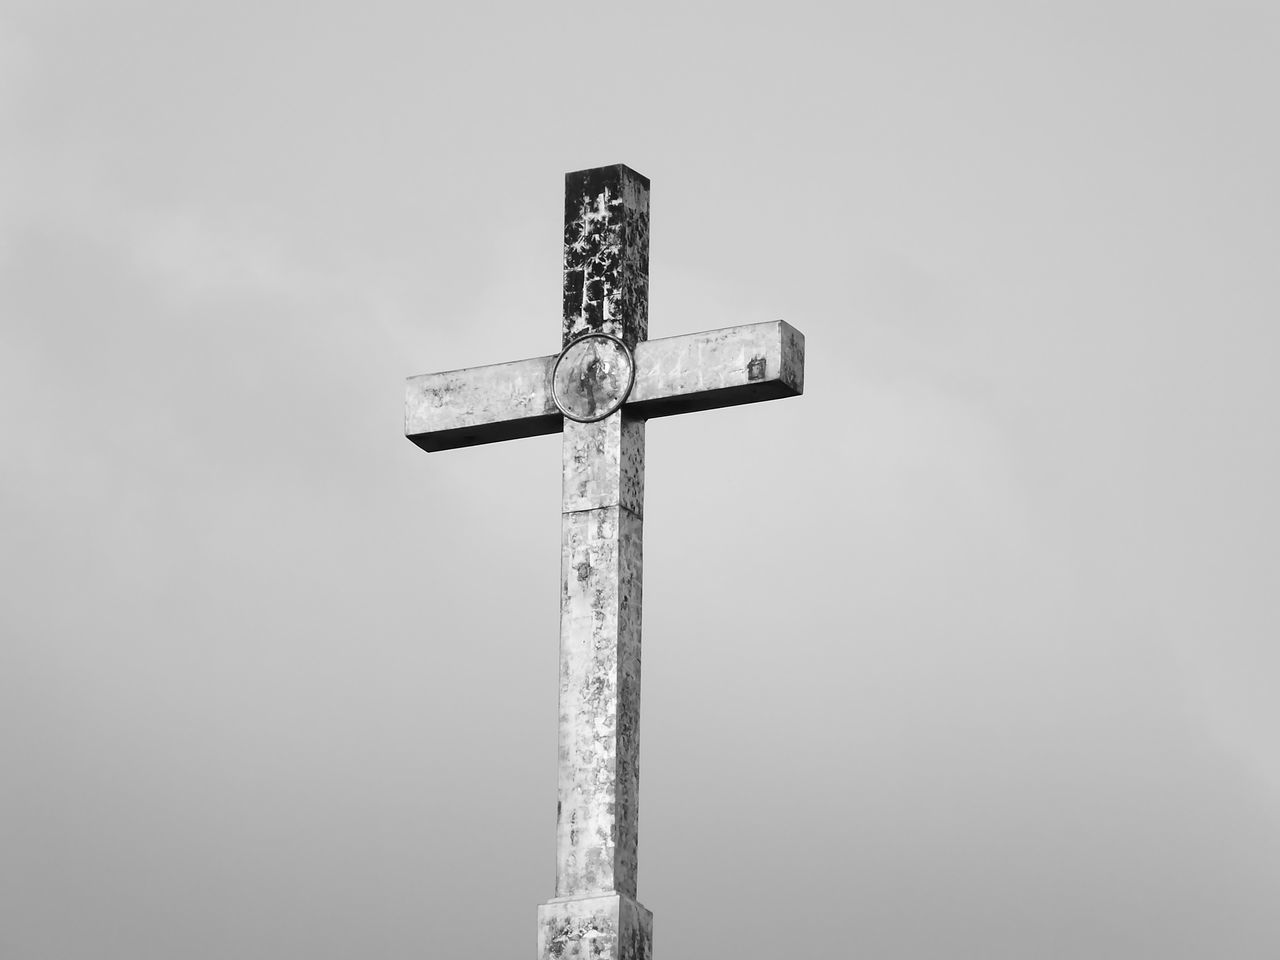 cross, low angle view, no people, religion, day, spirituality, outdoors, sky, clear sky, nature, close-up